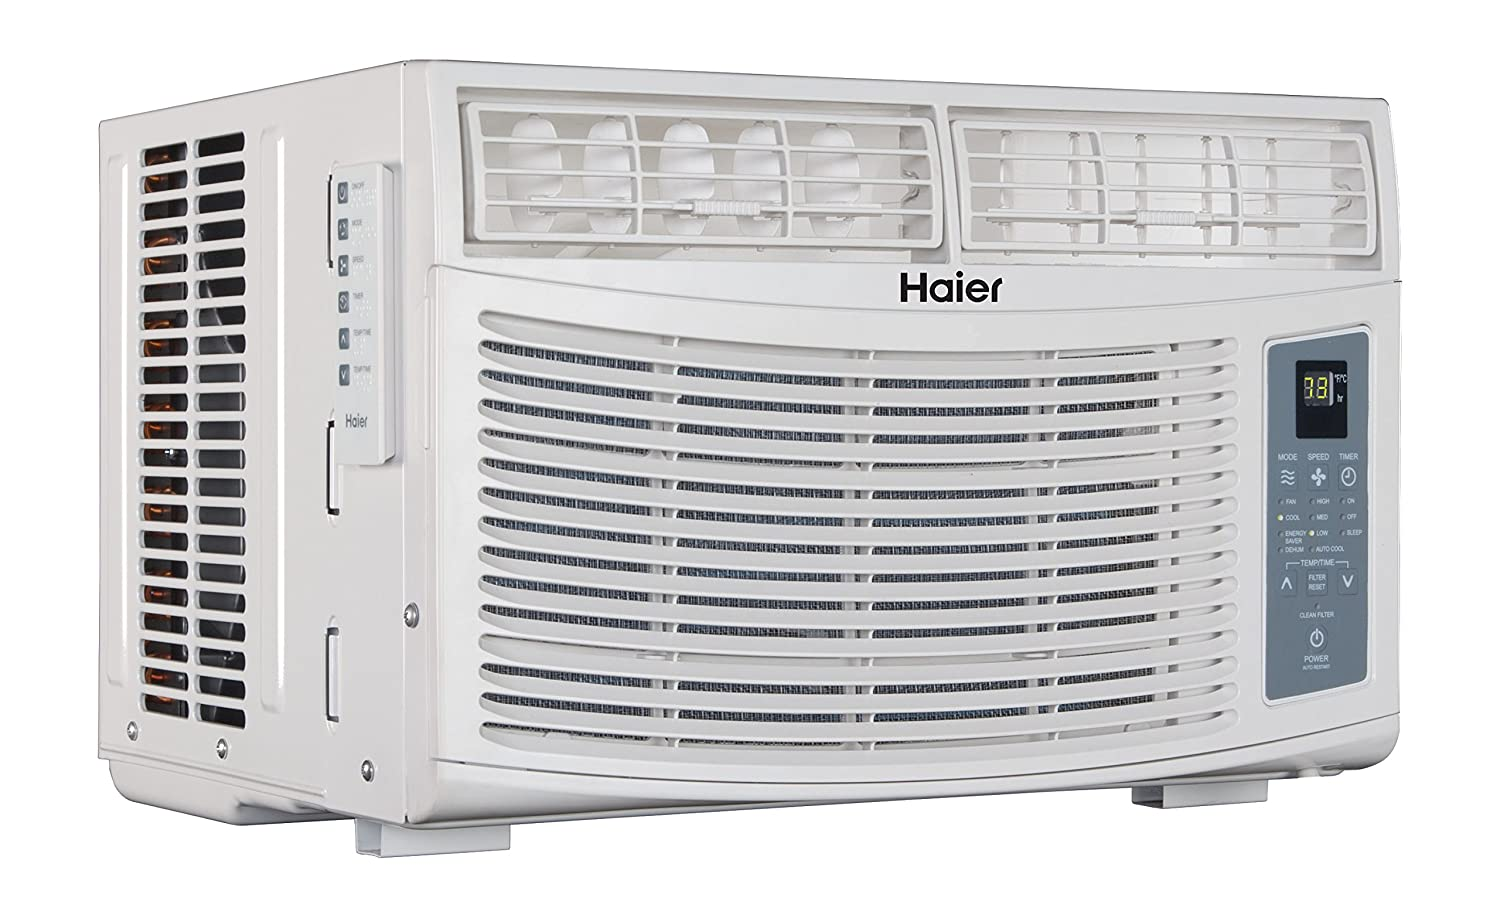 81LrL6AYWjL._SL1500_ amazon com haier hwr06xcr 6000 btu room air conditioner home  at aneh.co